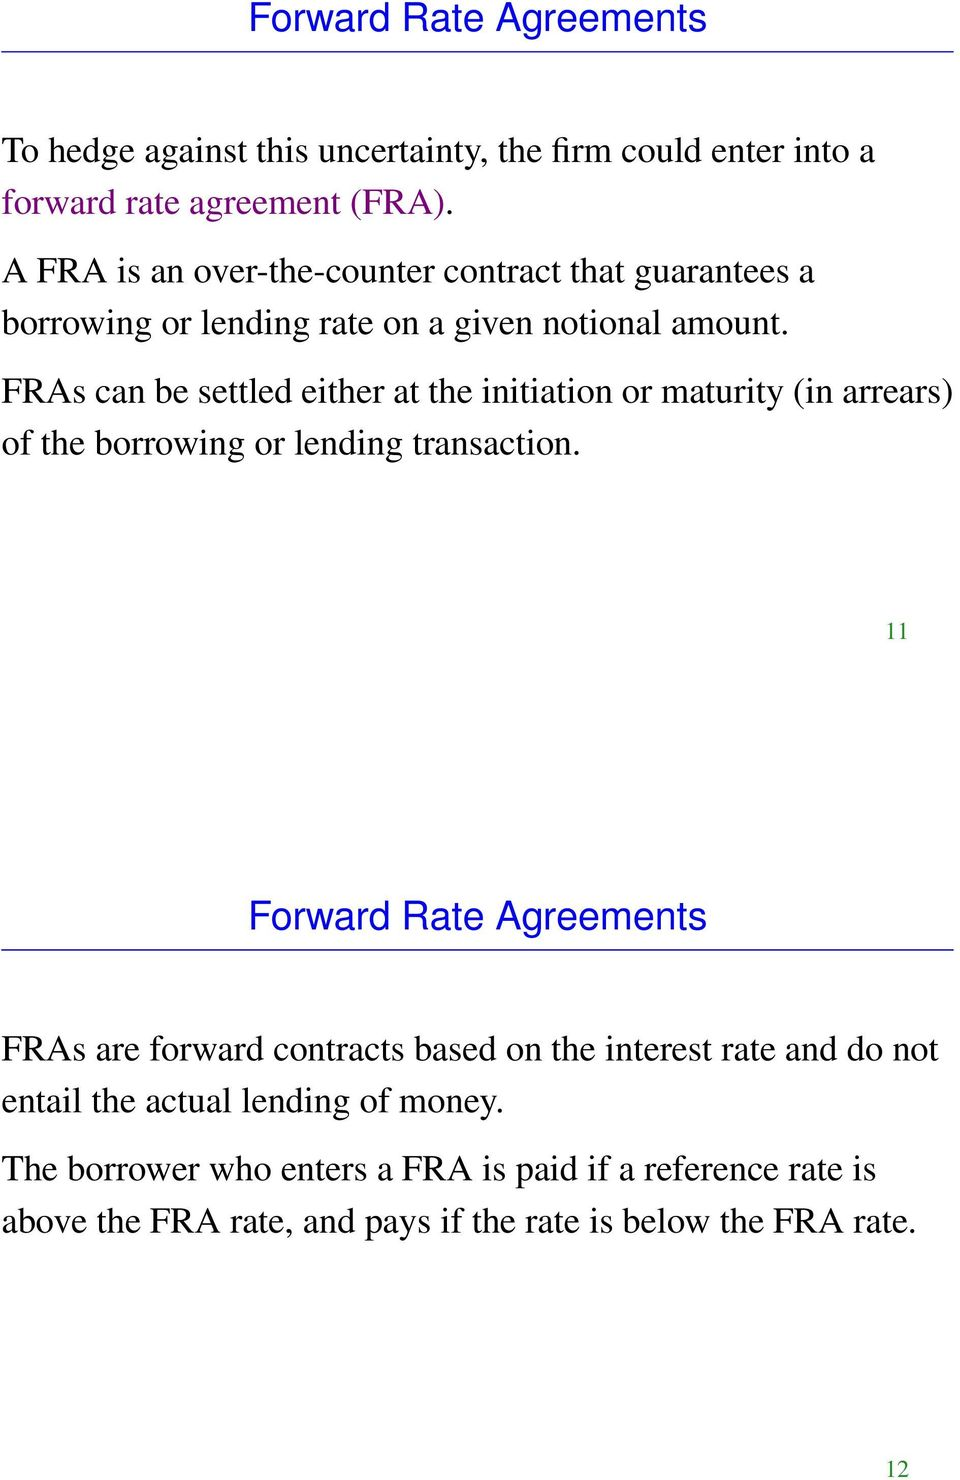 FRAs can be settled either at the initiation or maturity (in arrears) of the borrowing or lending transaction.